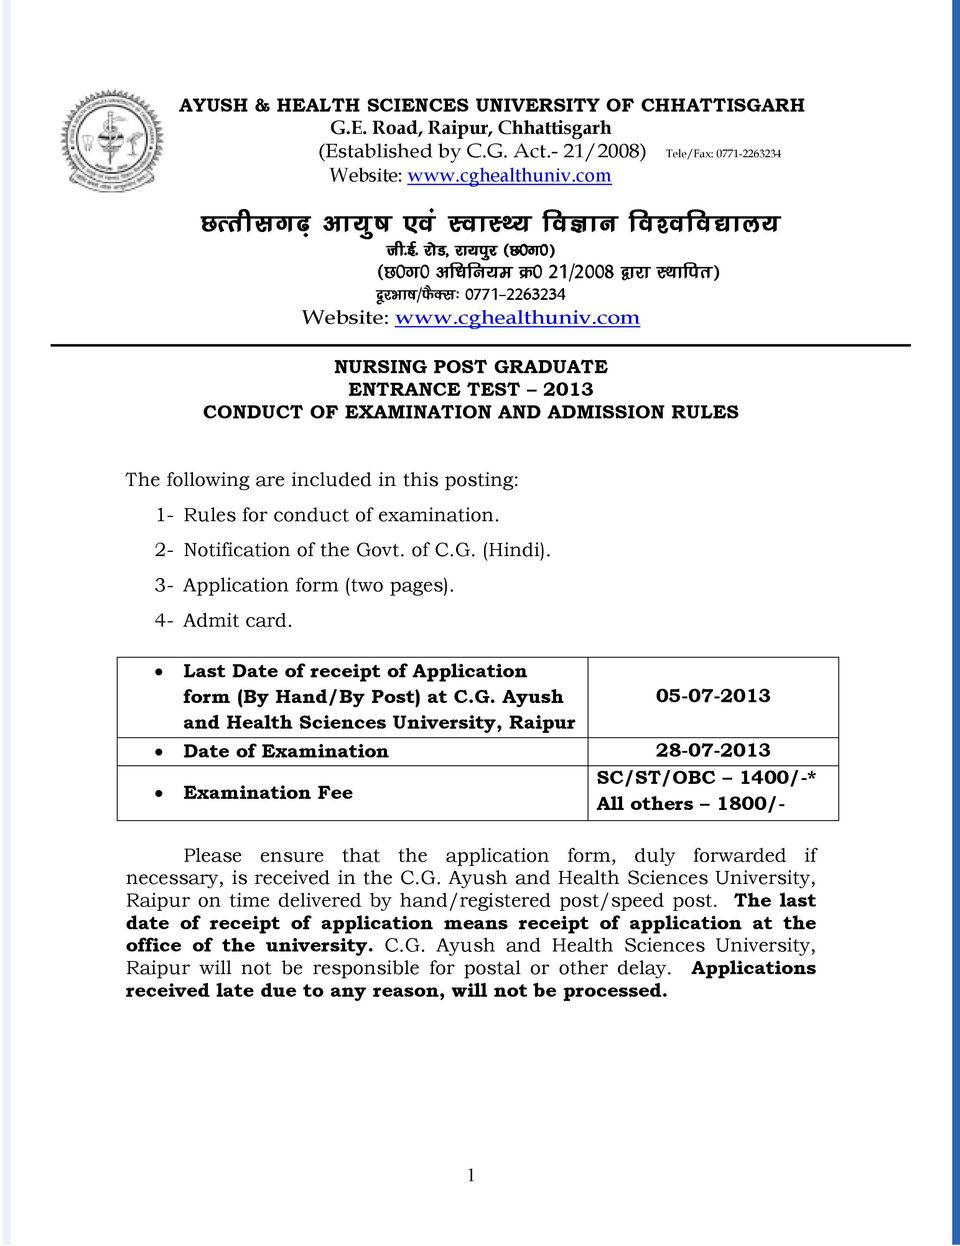 com NURSING POST GRADUATE ENTRANCE TEST 2013 CONDUCT OF EXAMINATION AND ADMISSION RULES The following are included in this posting: 1- Rules for conduct of examination. 2- Notification of the Govt.